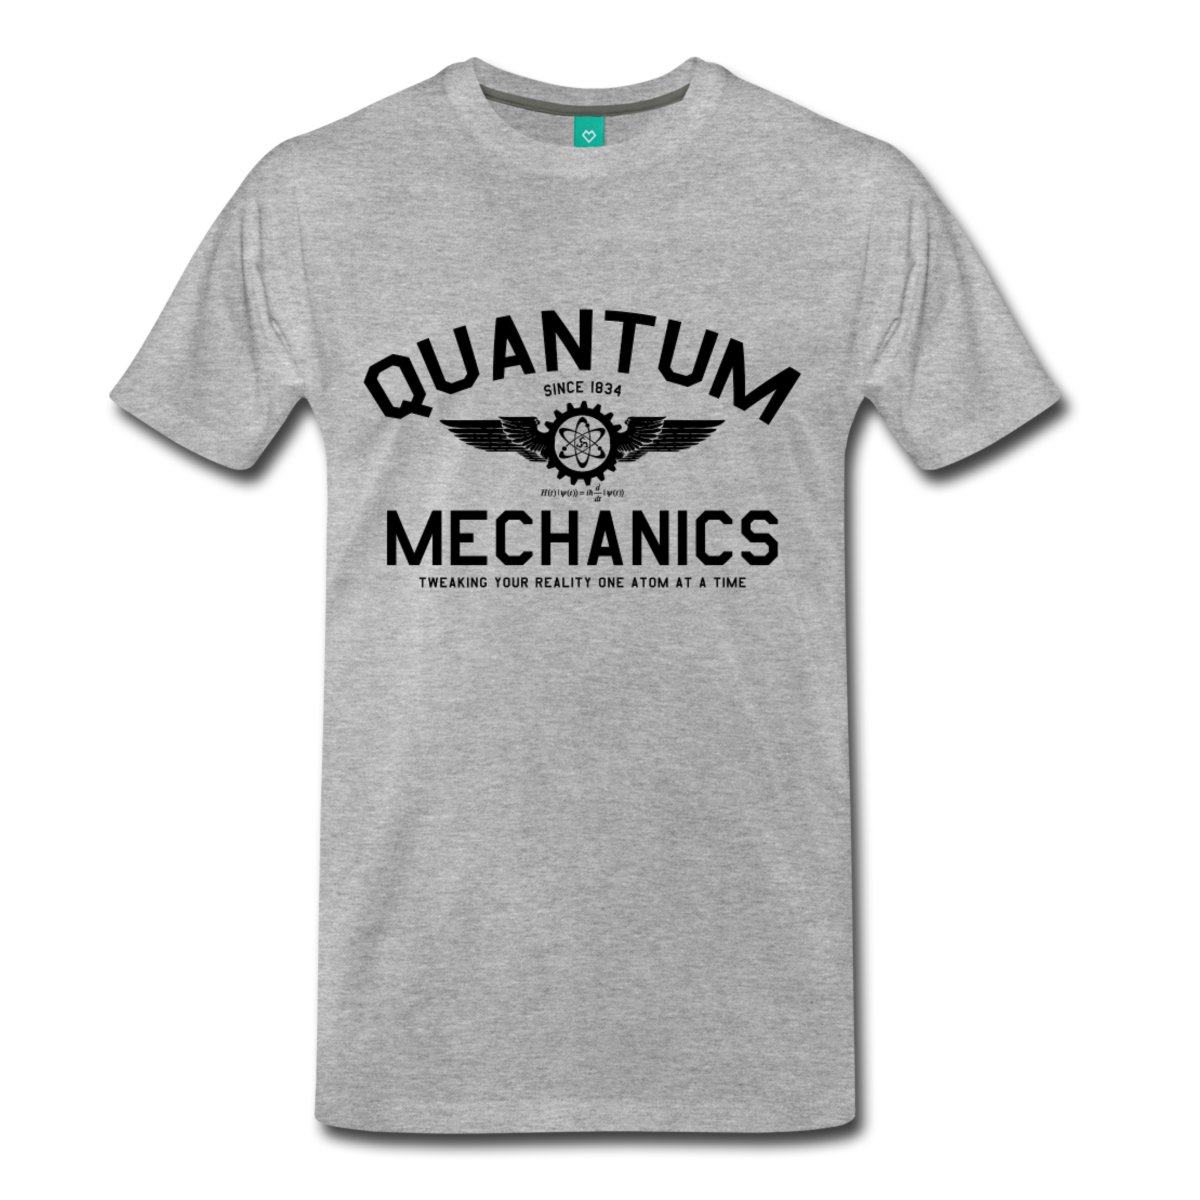 Mechanics - in fashion at all times 21